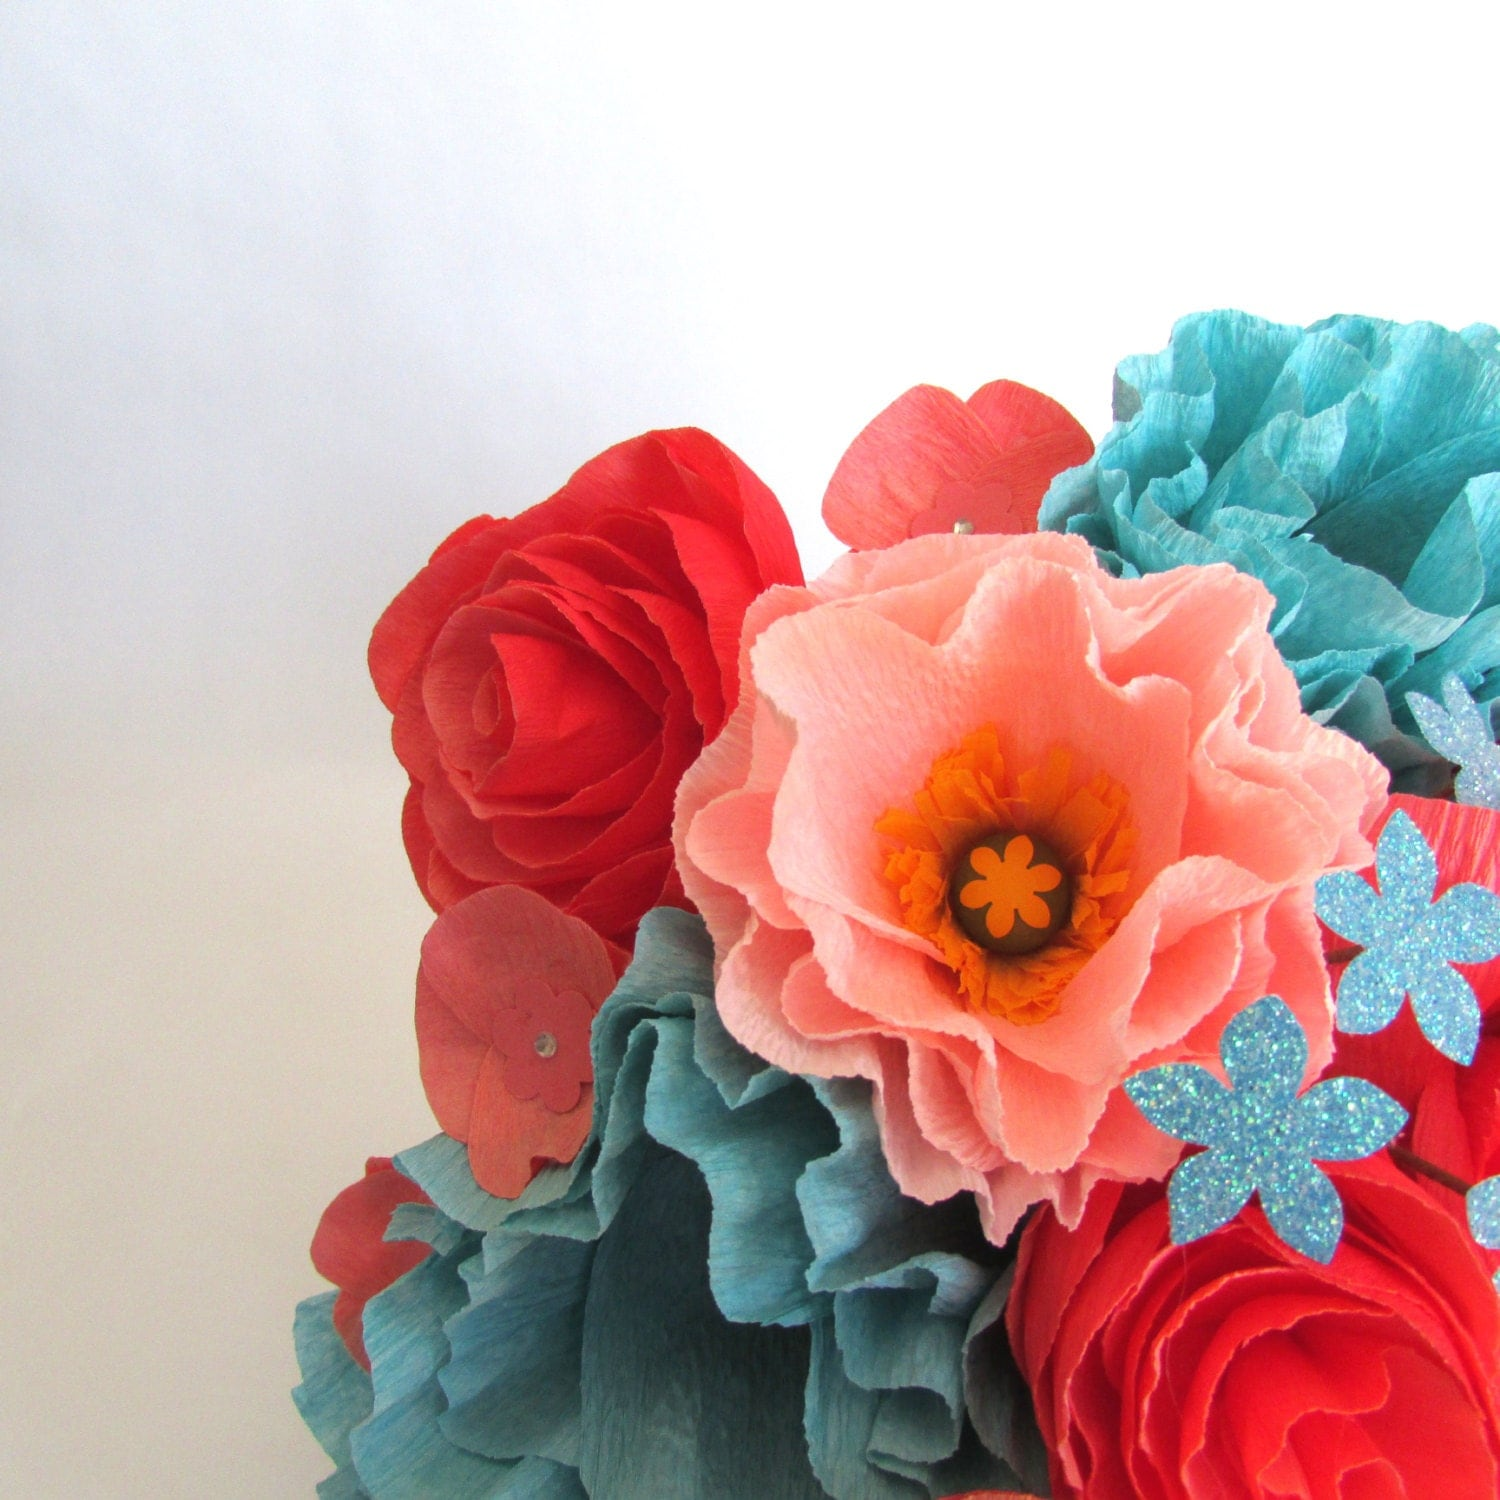 Turquoise Flowers For Wedding: Coral & Turquoise Bridal Bouquet Paper Bouquet By